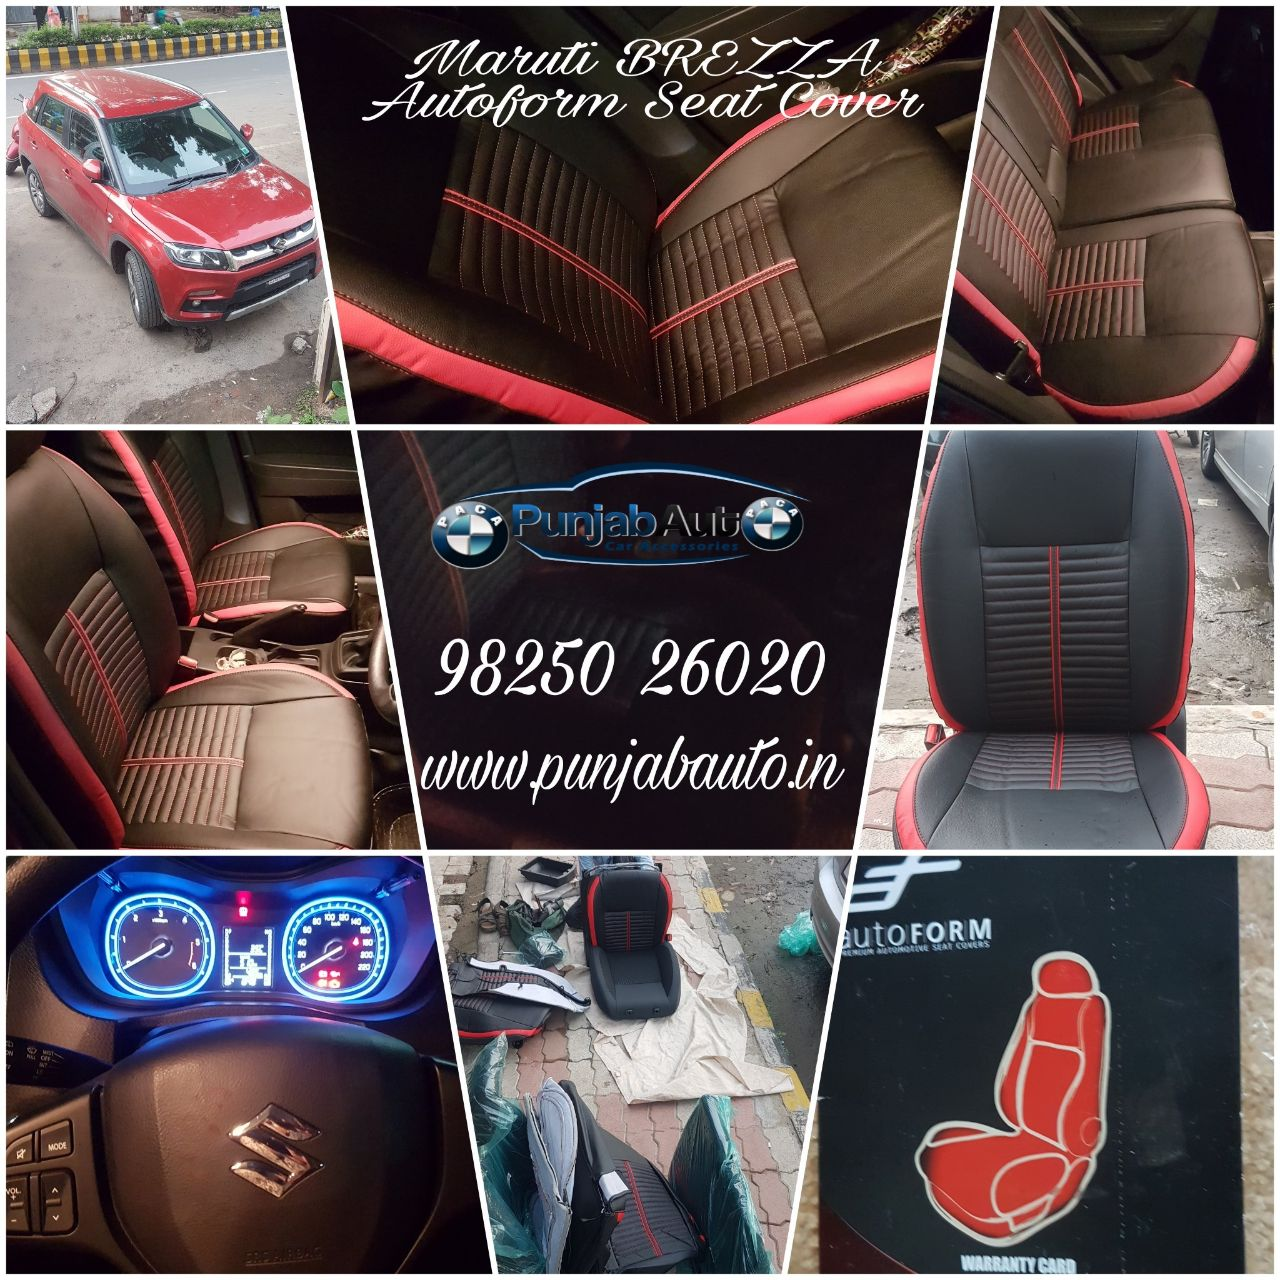 Recently we have fitted Autoform Seat Covers in Vitara Brezza and that too with Full Bucket Fitting. Red + Black goes with the interior of this Car and Add on was that the Brezza itself was in Red Colour. If you are looking for Style & Comfort and Durability too then,  you must go for these branded Seat Covers. It also has 2 Years Warranty for Material and Stitching as well.